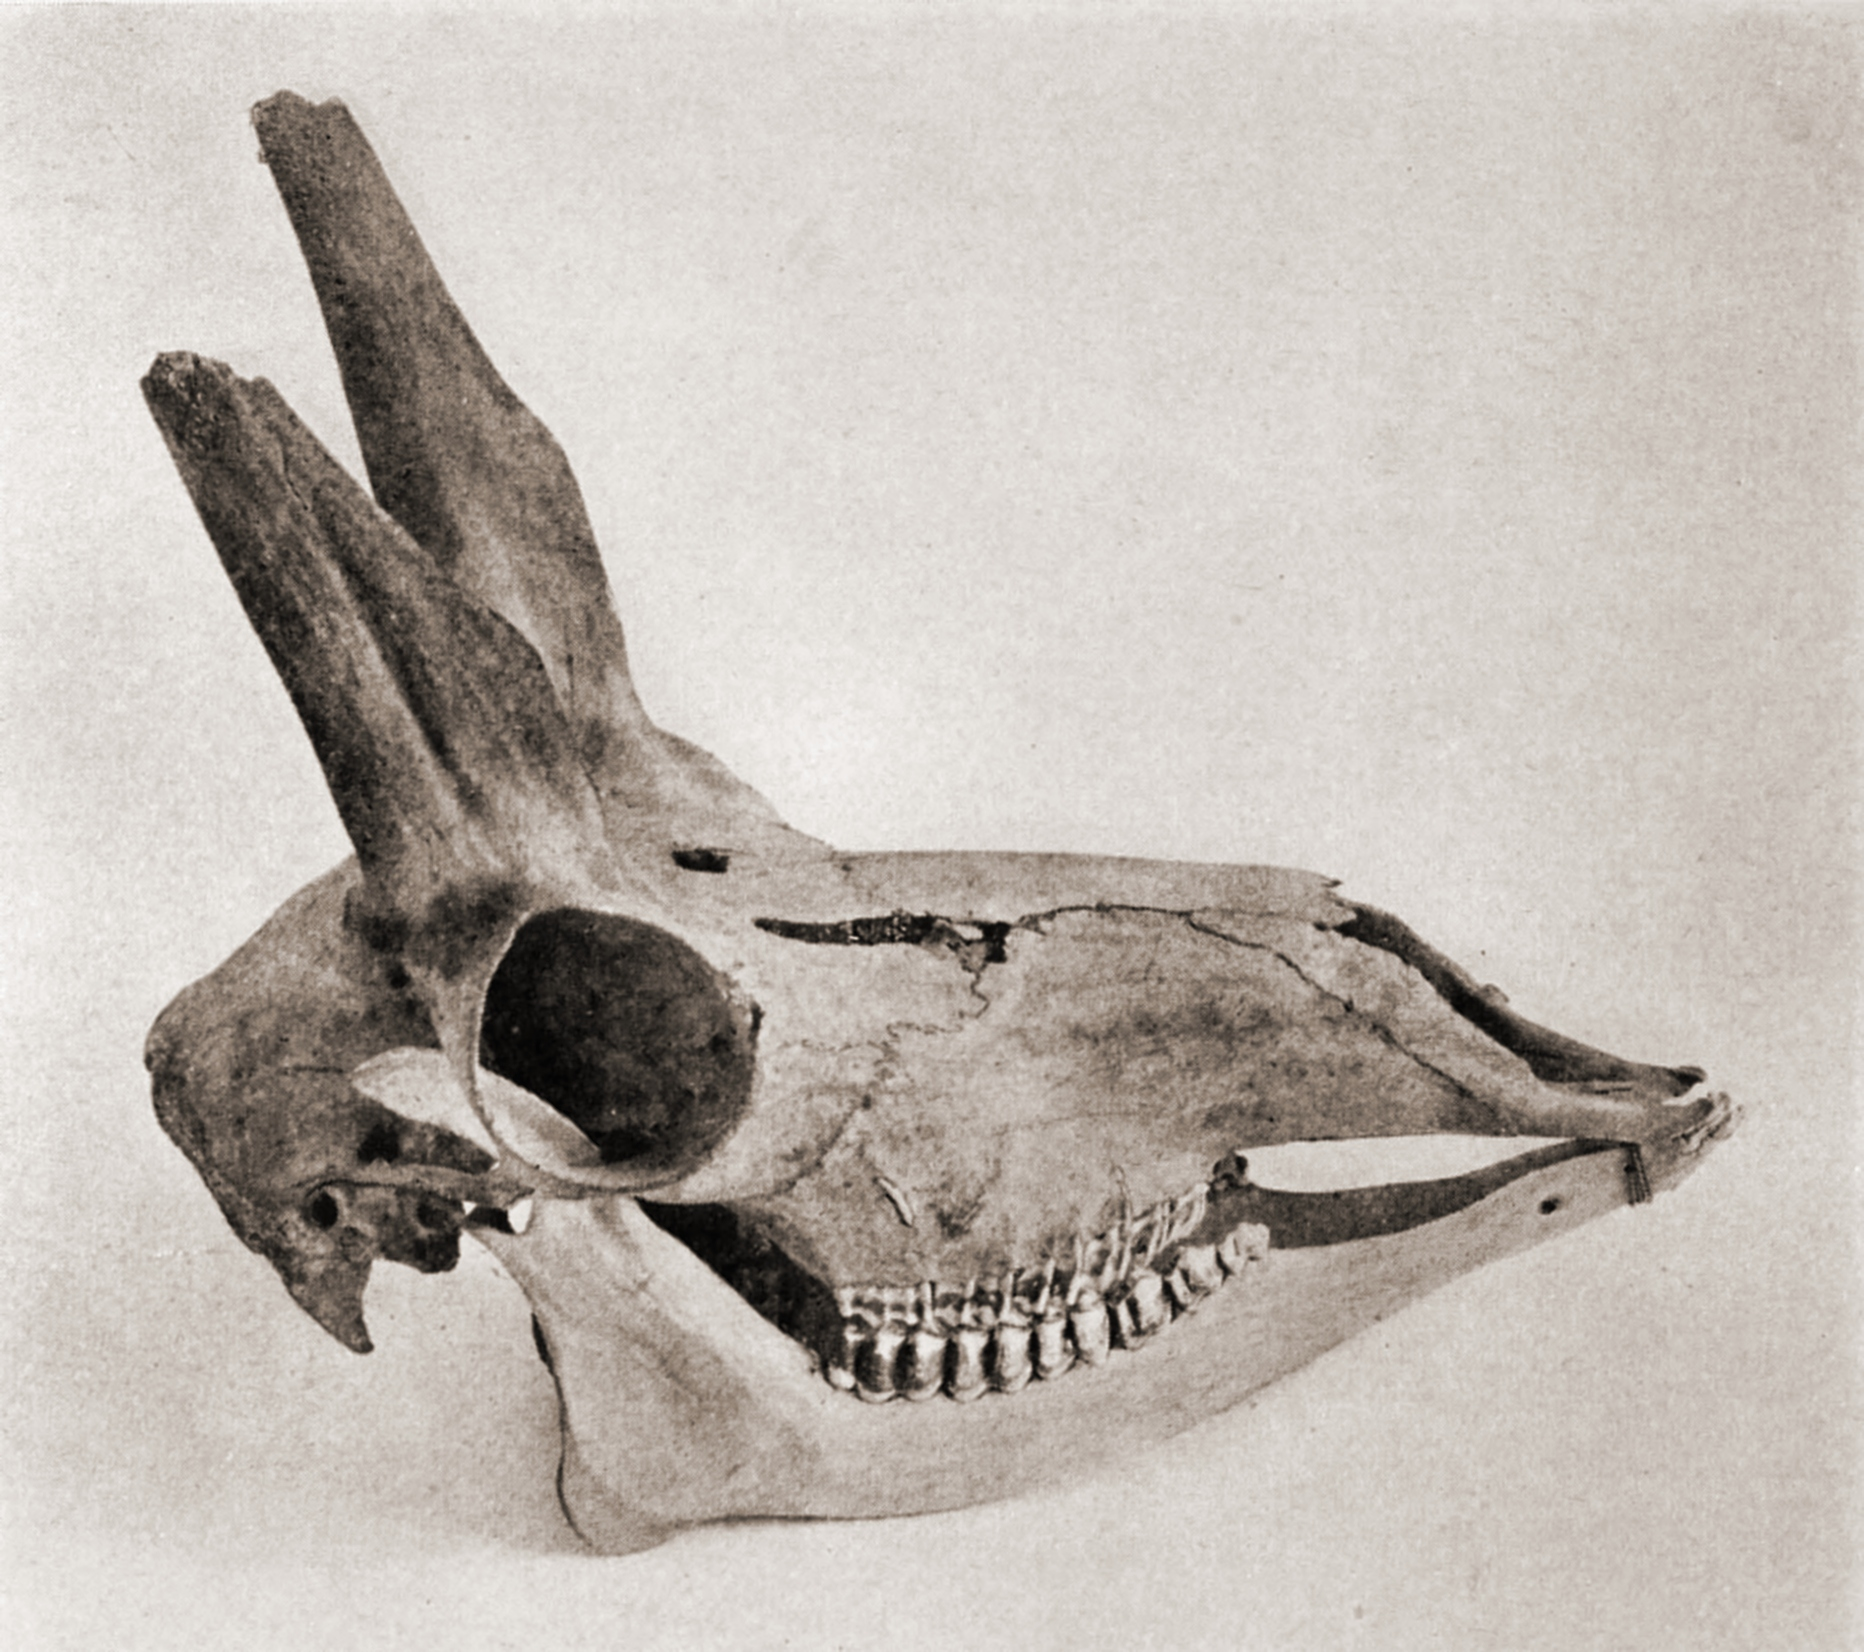 Skull of American antelope by Robert Wilson Shufeldt about 1923